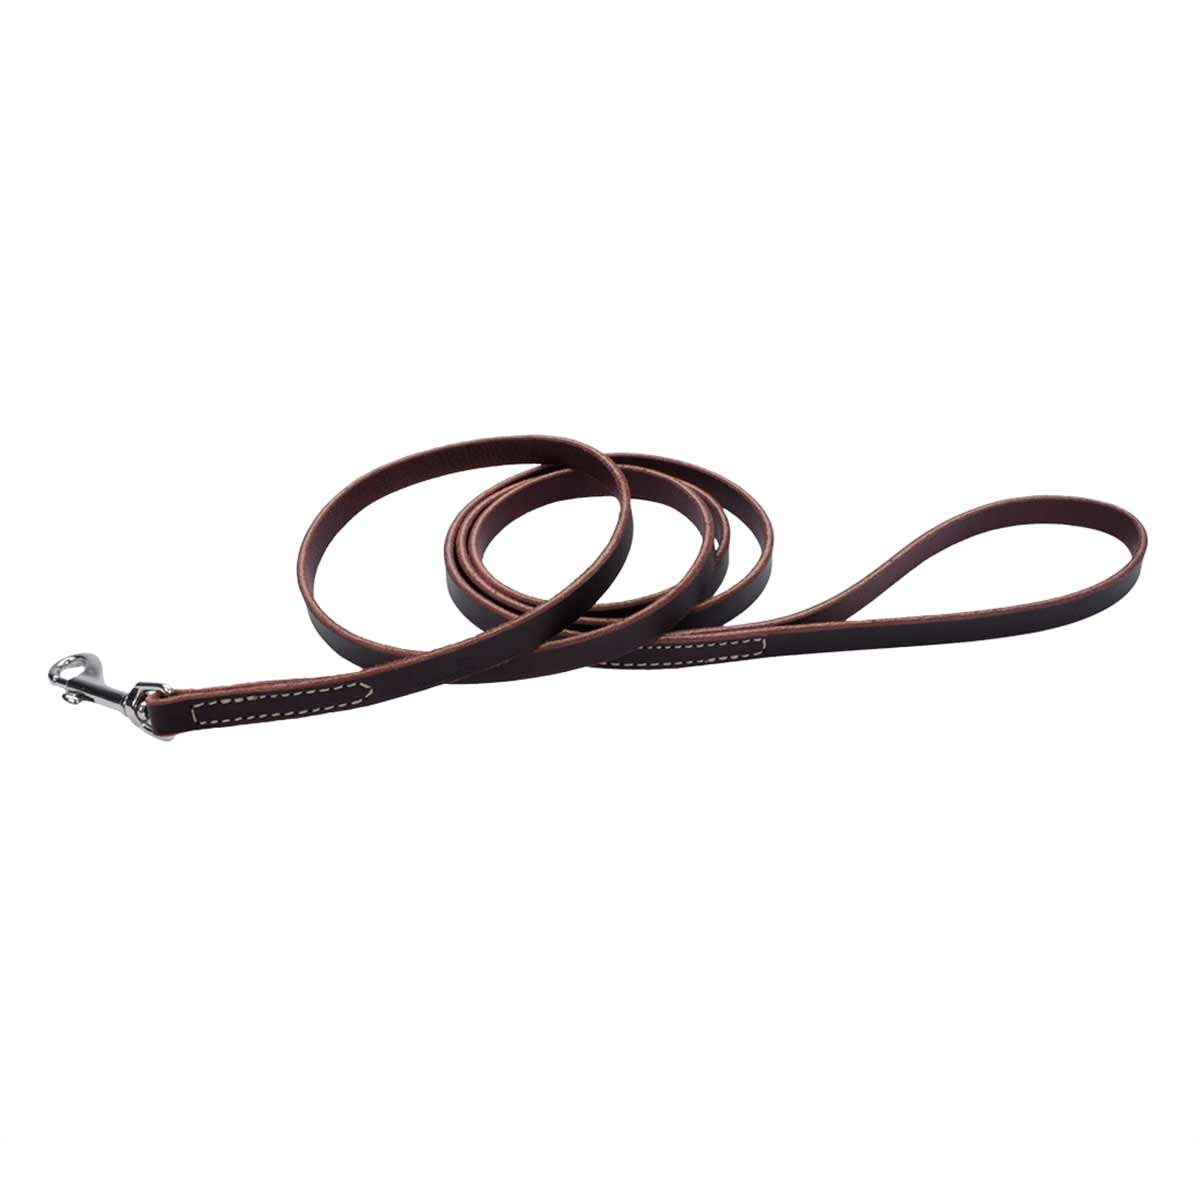 Brown Flat Latigo Leather Training Lead - 1/2 inch by 6 feet